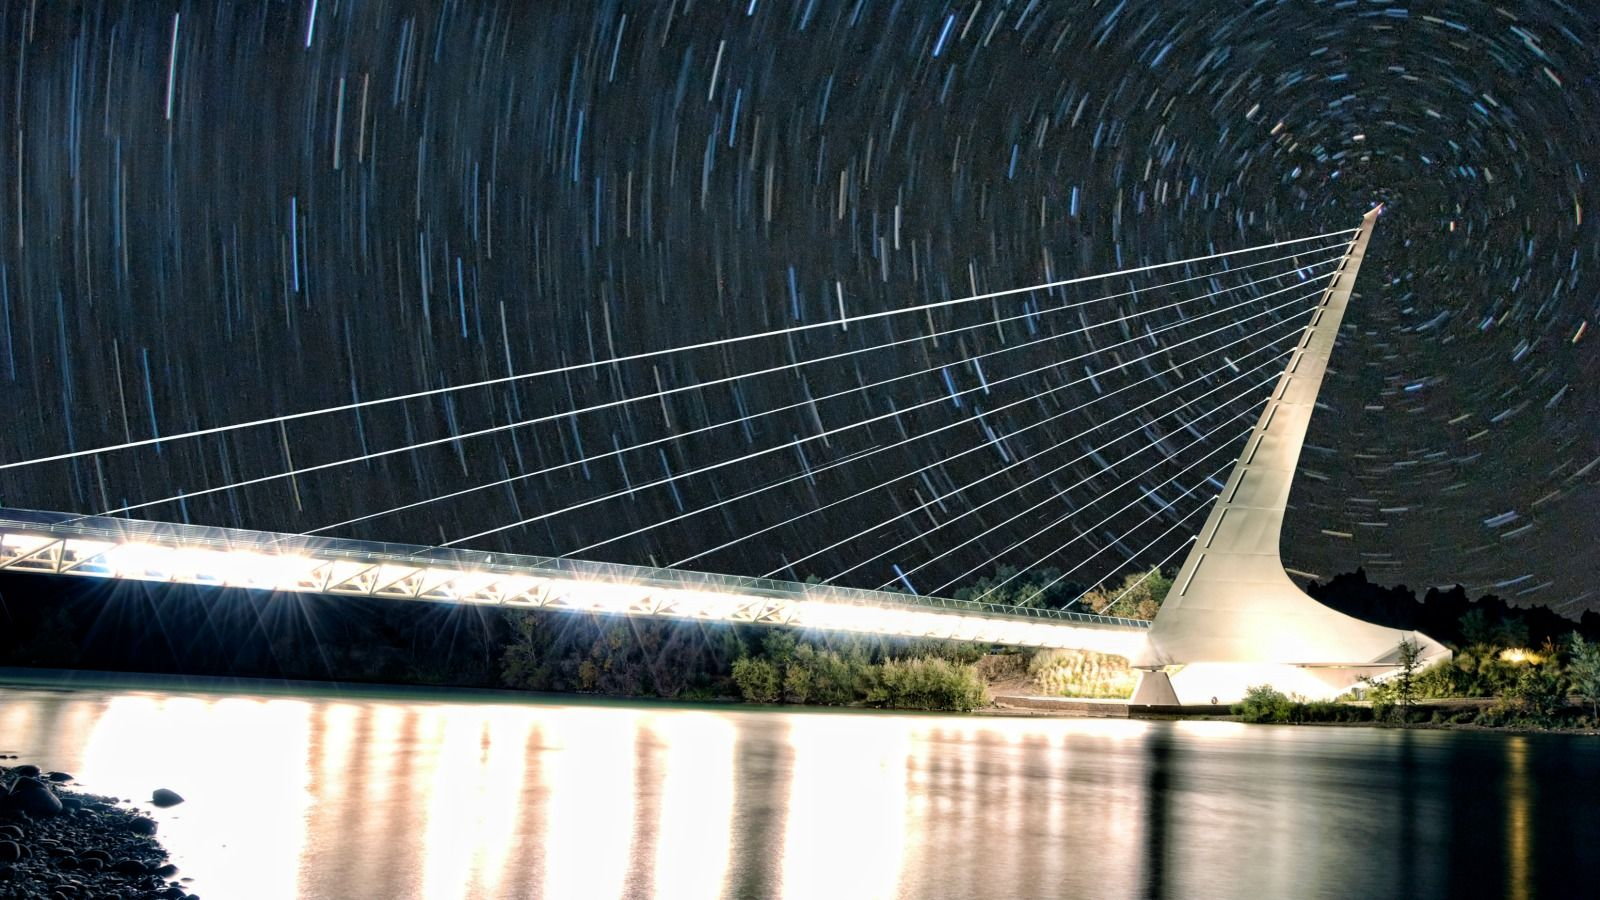 Things to Do in Redding - Sundial Bridge